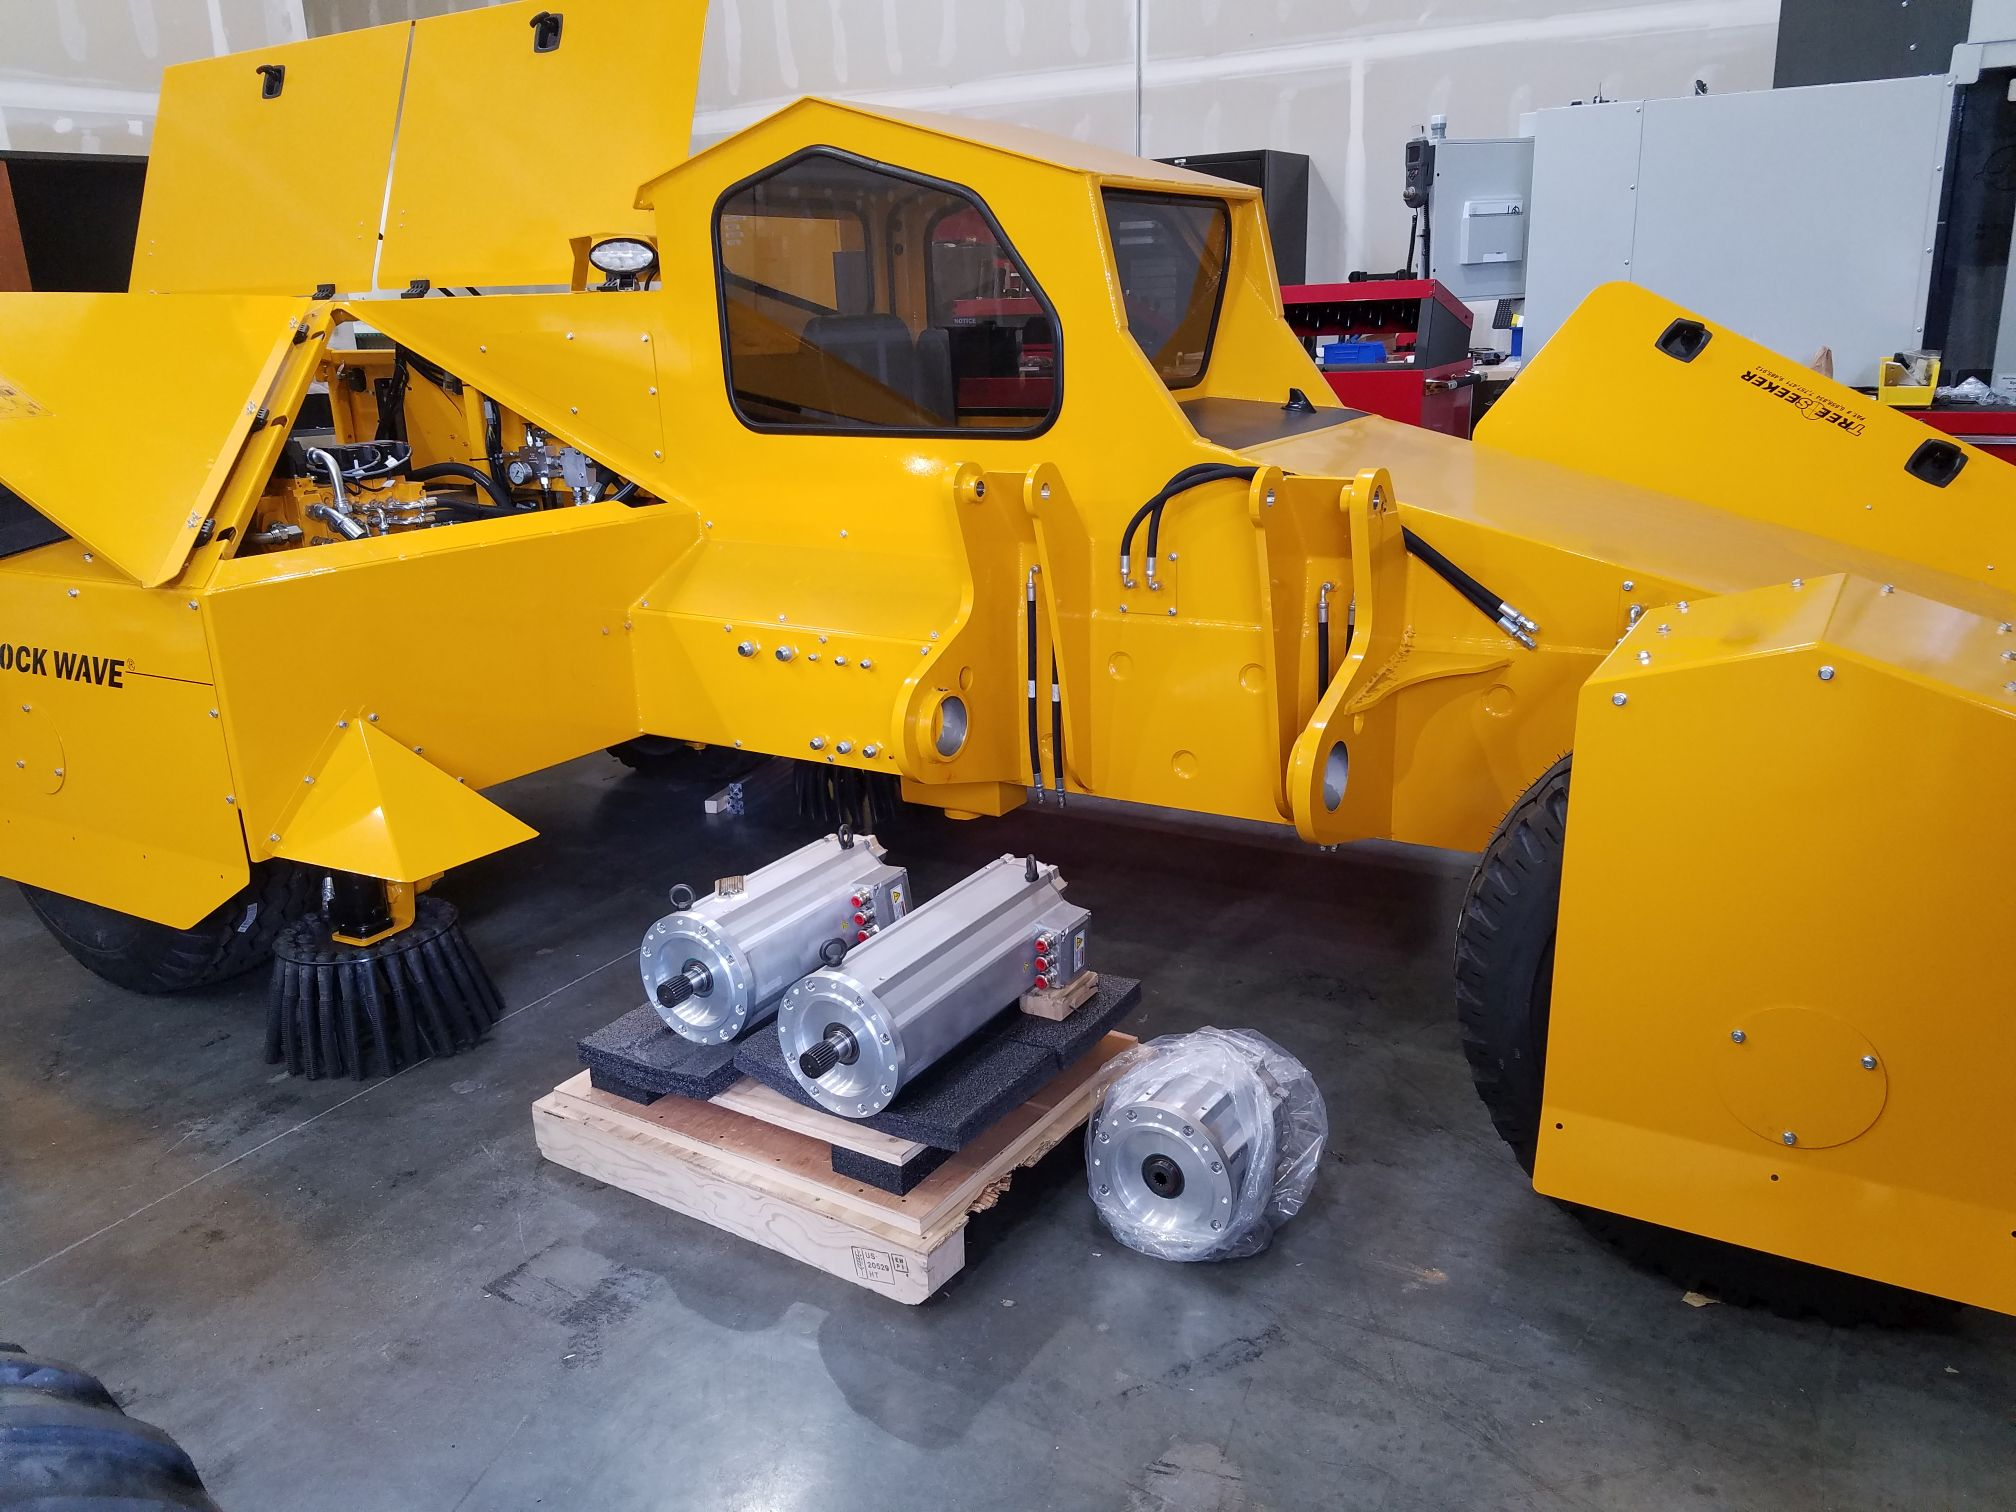 Almond harvester chassis with global vehicle motors in the foreground